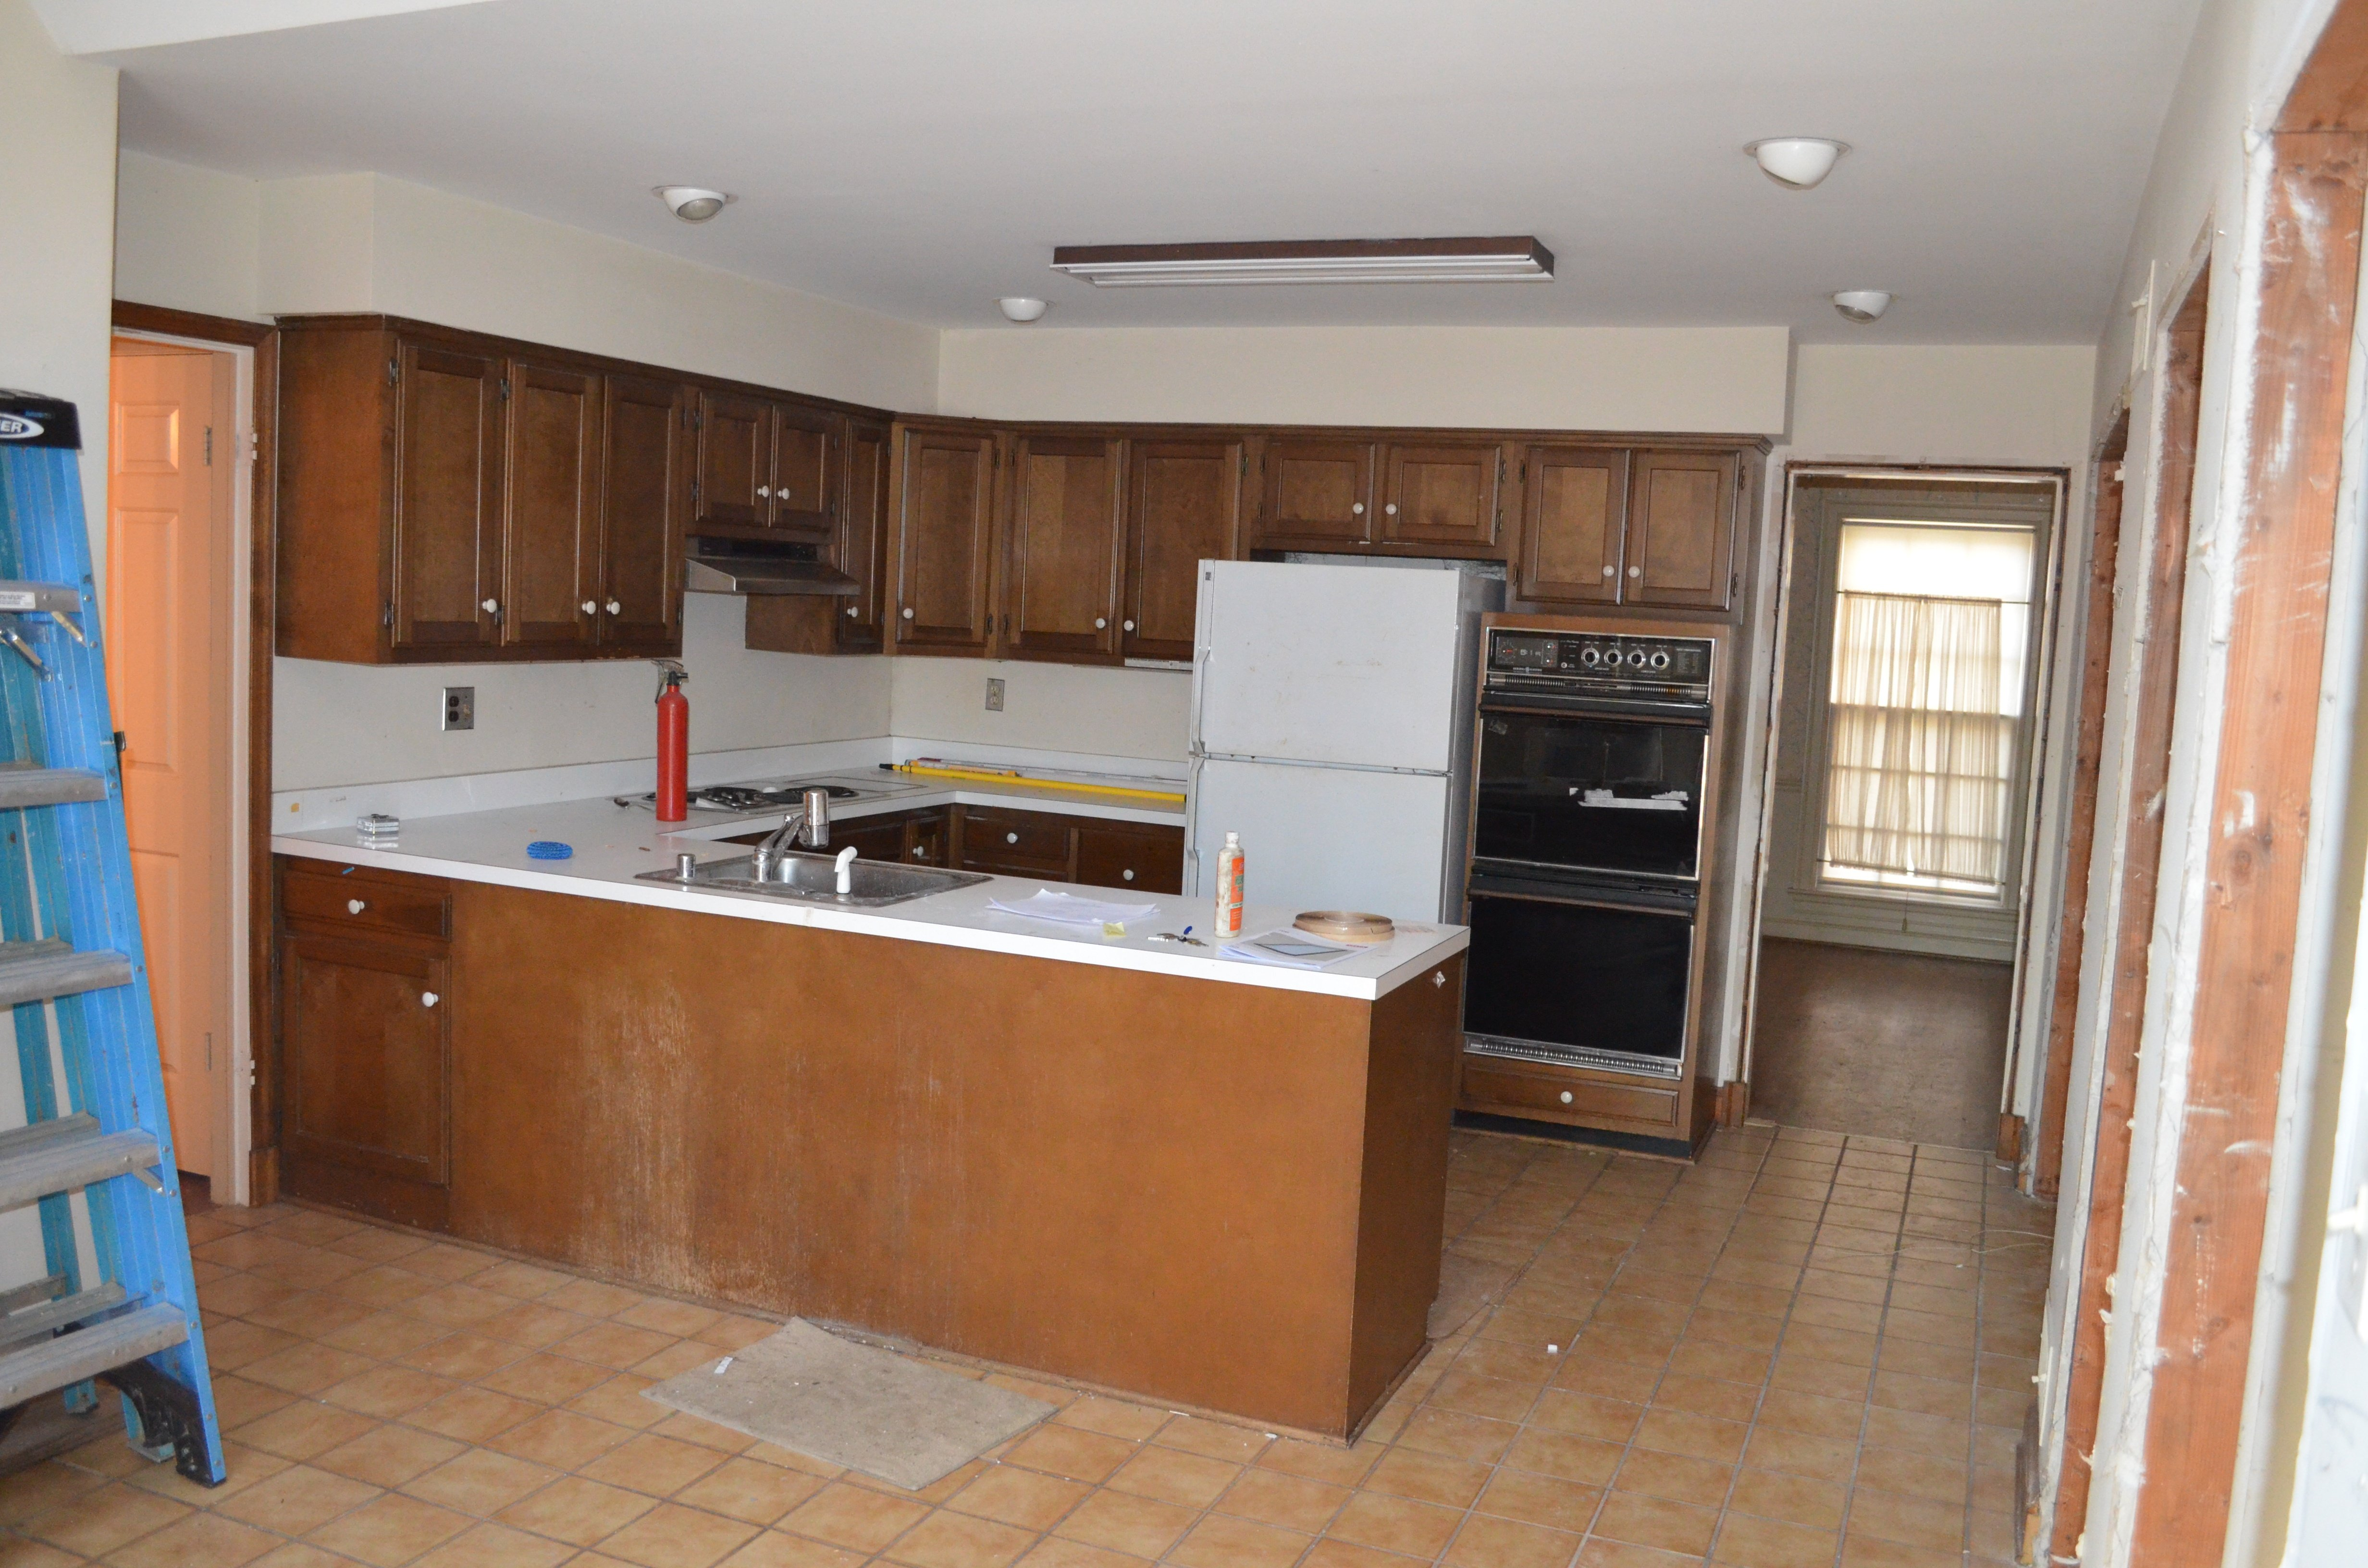 kitchen remodel before G